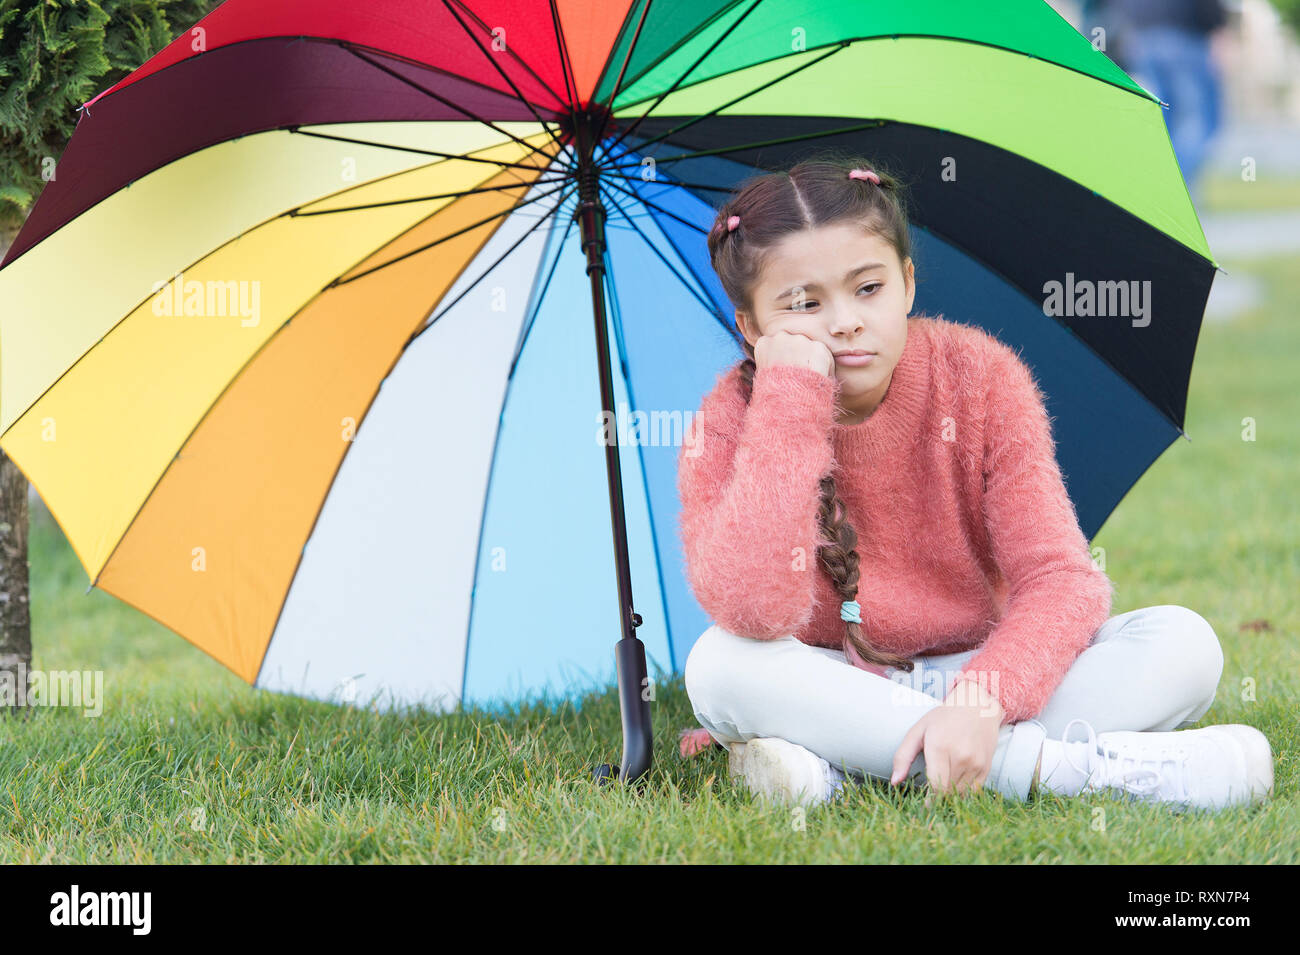 Autumn depression. Spring style. depressive mood in autumn rainy weather. Little girl tired under colorful umbrella. Multicolored umbrella for little happy girl. Rainbow after rain. feeling depressed. - Stock Image